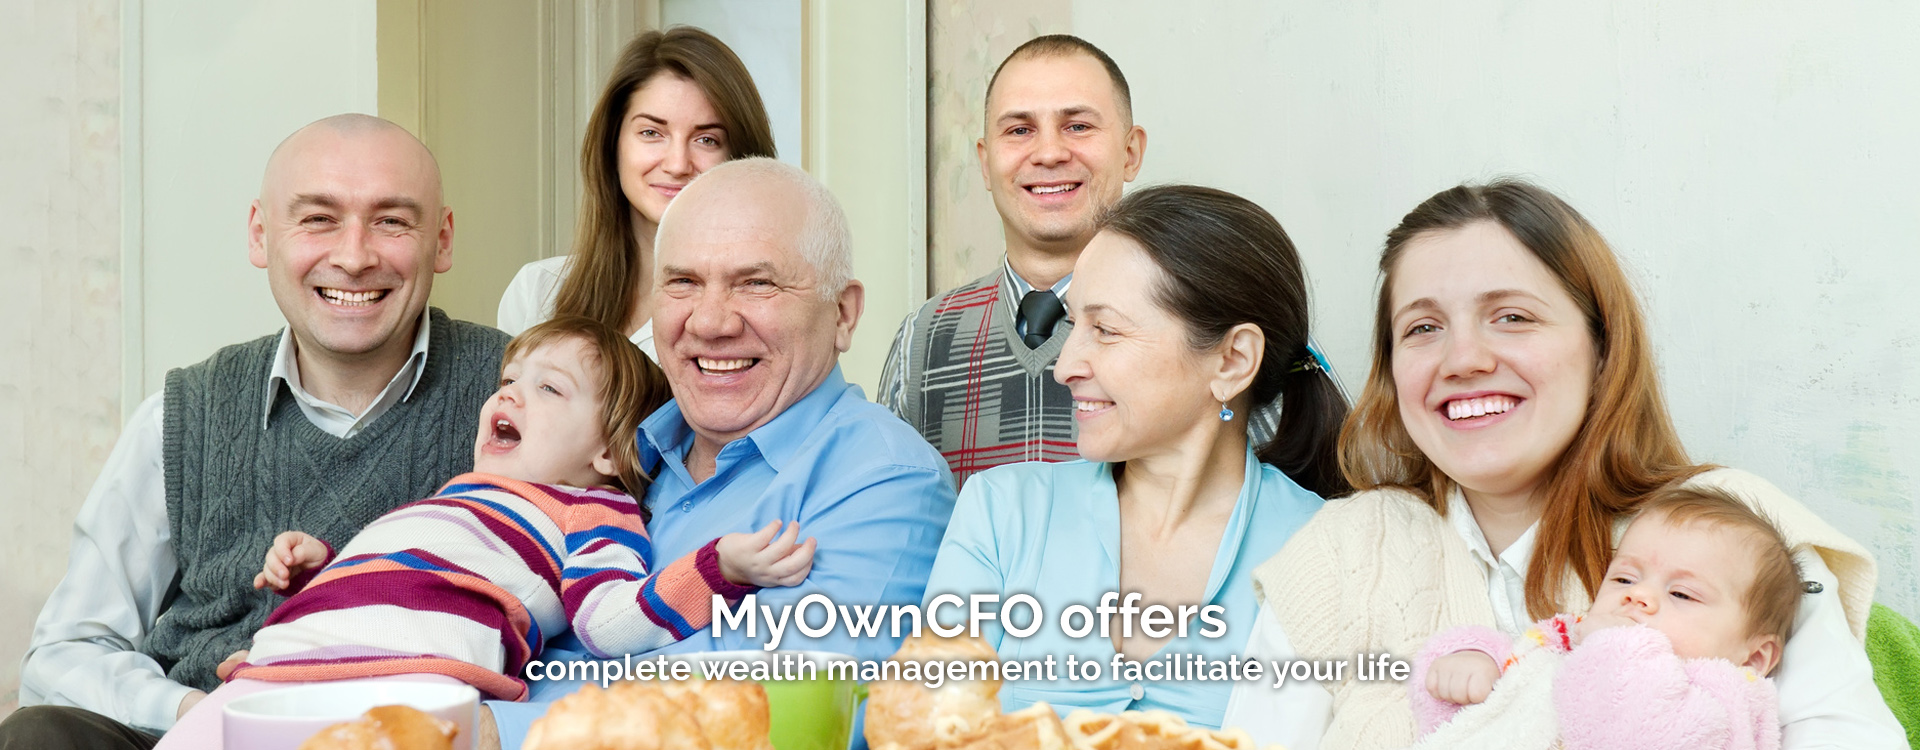 MyOwnCFO - Calgary Family Office